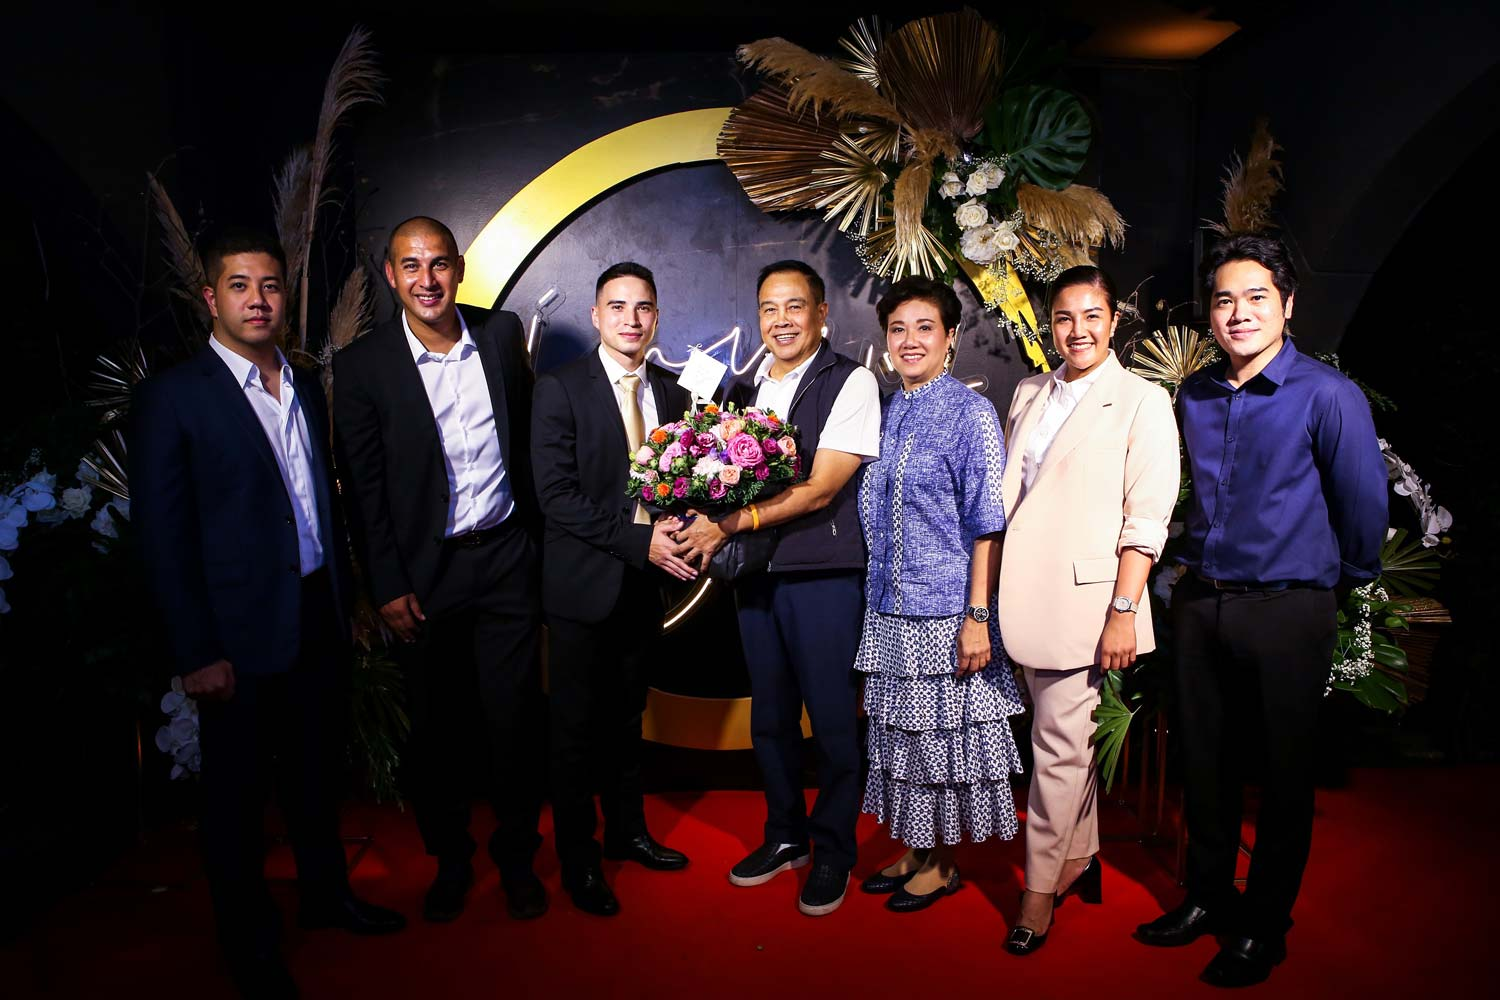 Sukhumvit's chic modern french restaurant and bar ivy 47 celebrates its official grand opening